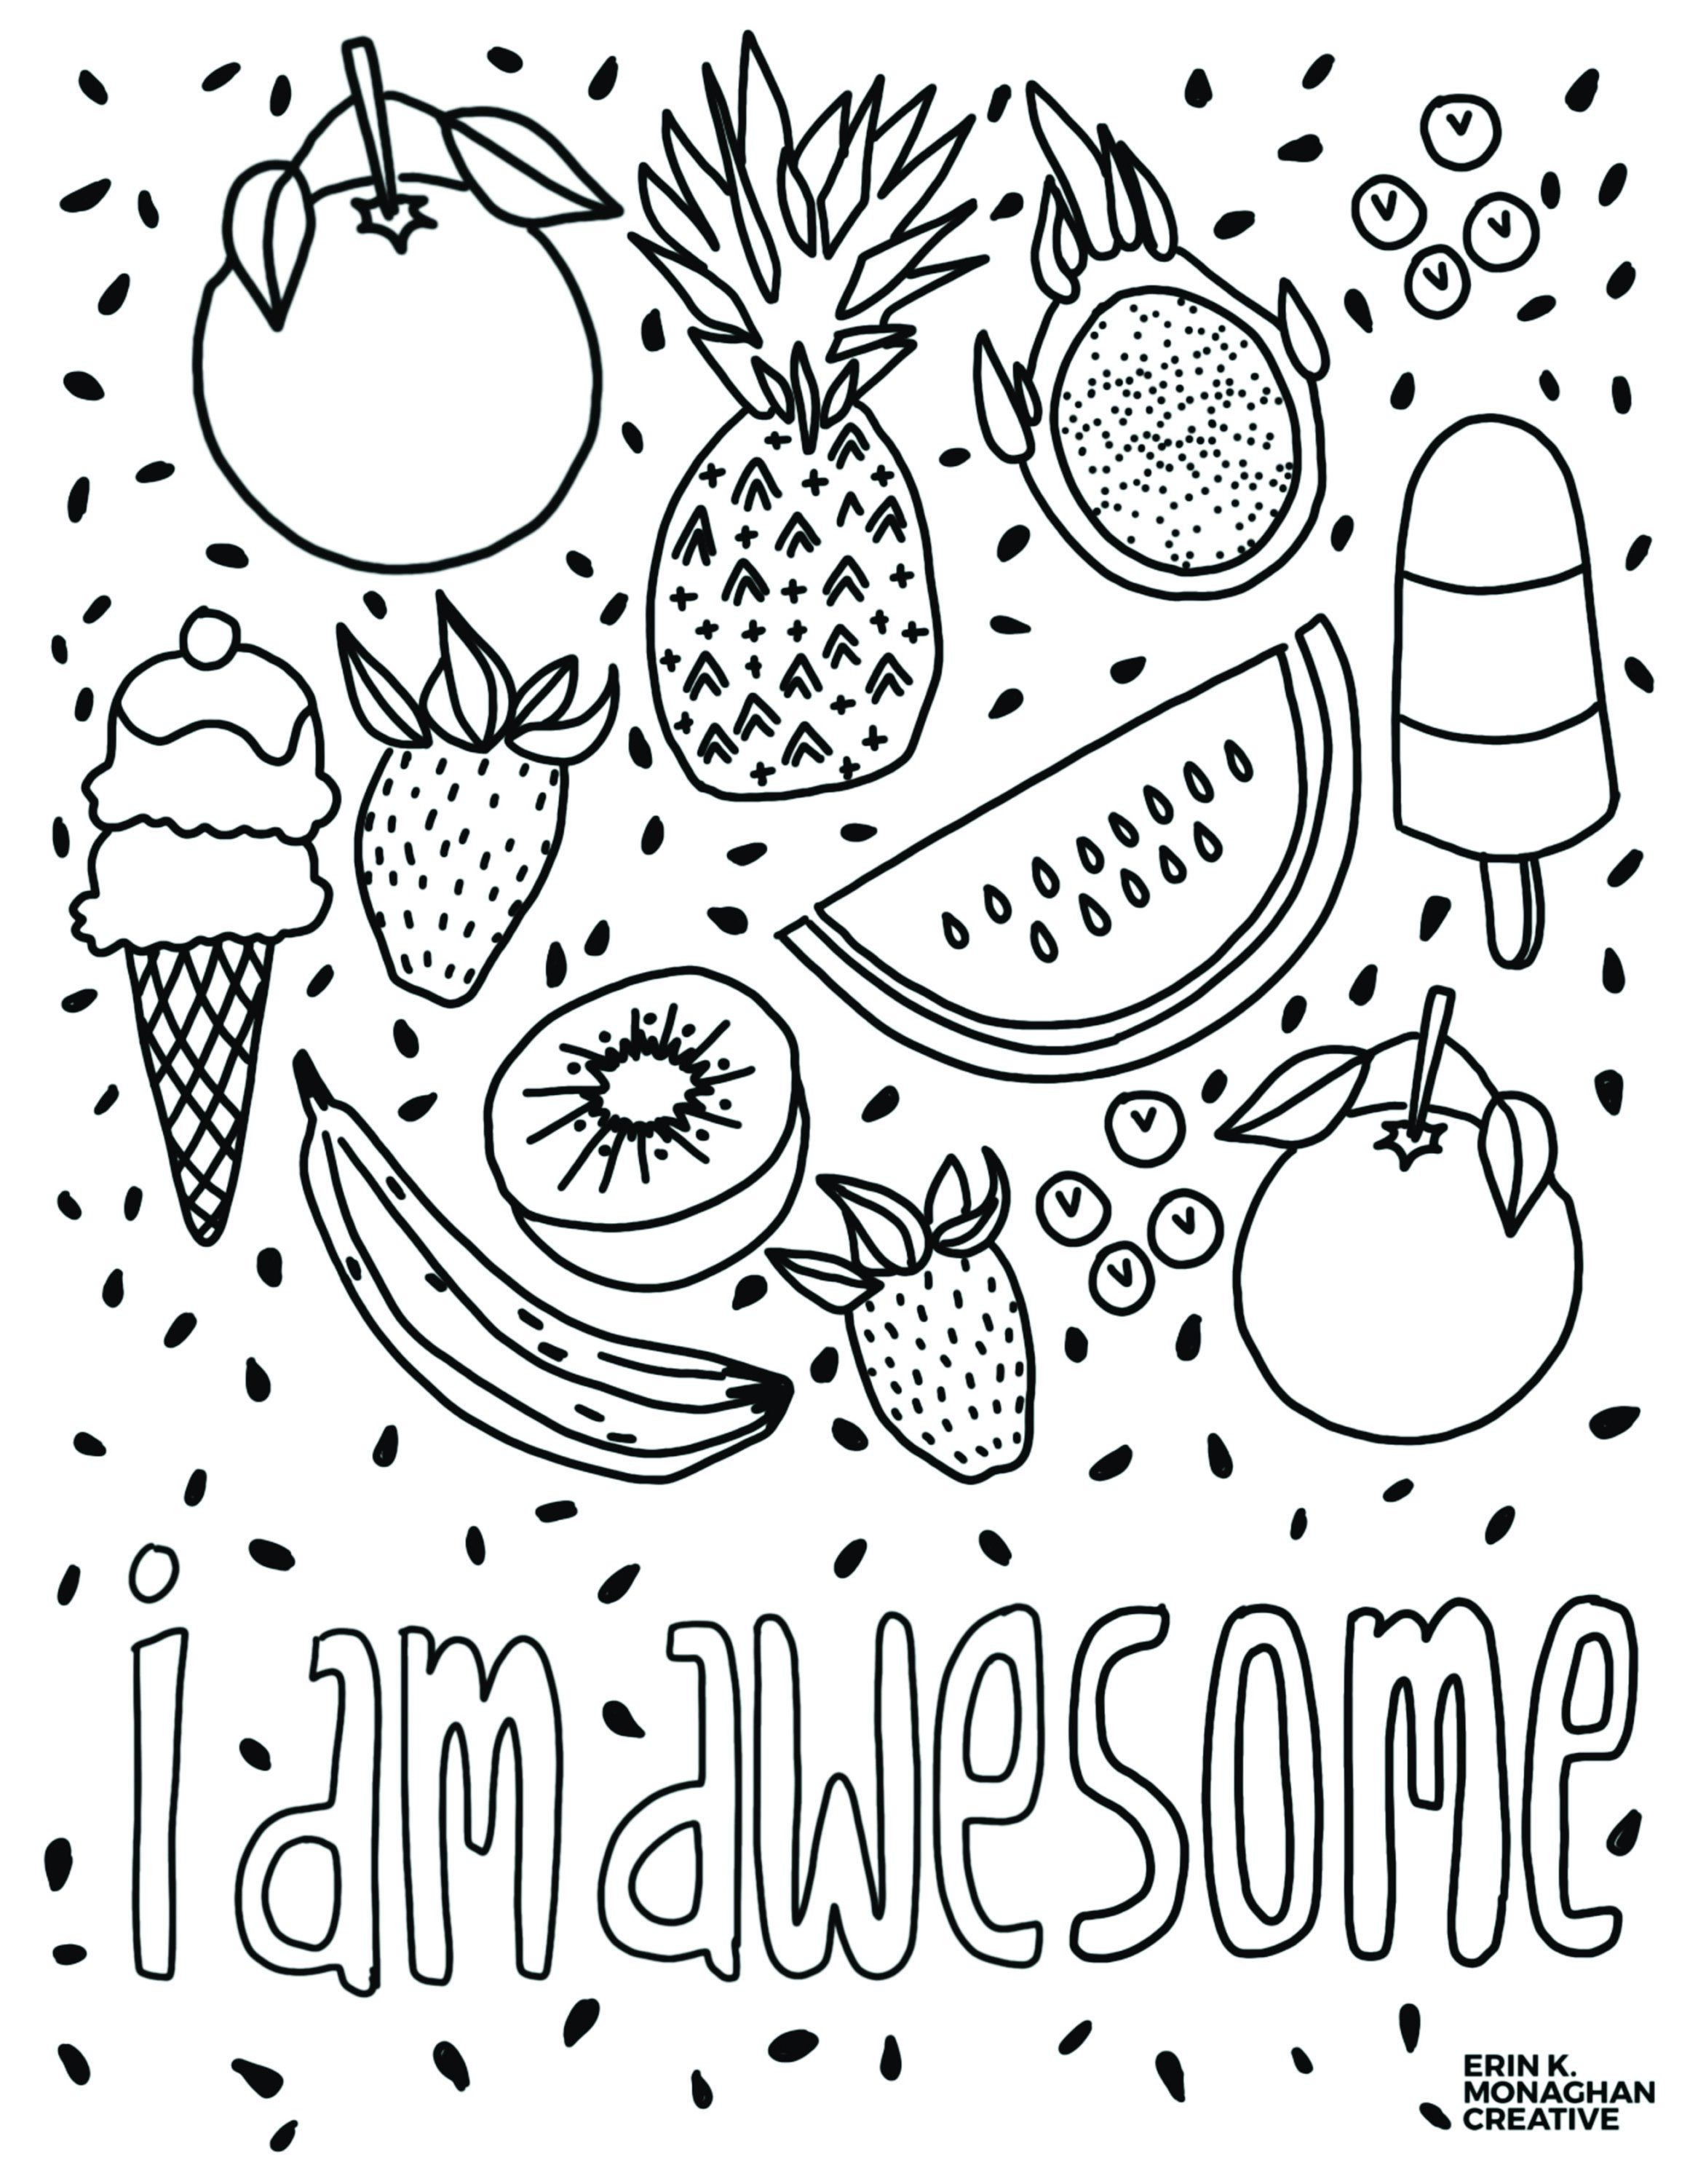 I Am Awesome Coloring Sheet - Growth Mindset for Kids  Cool